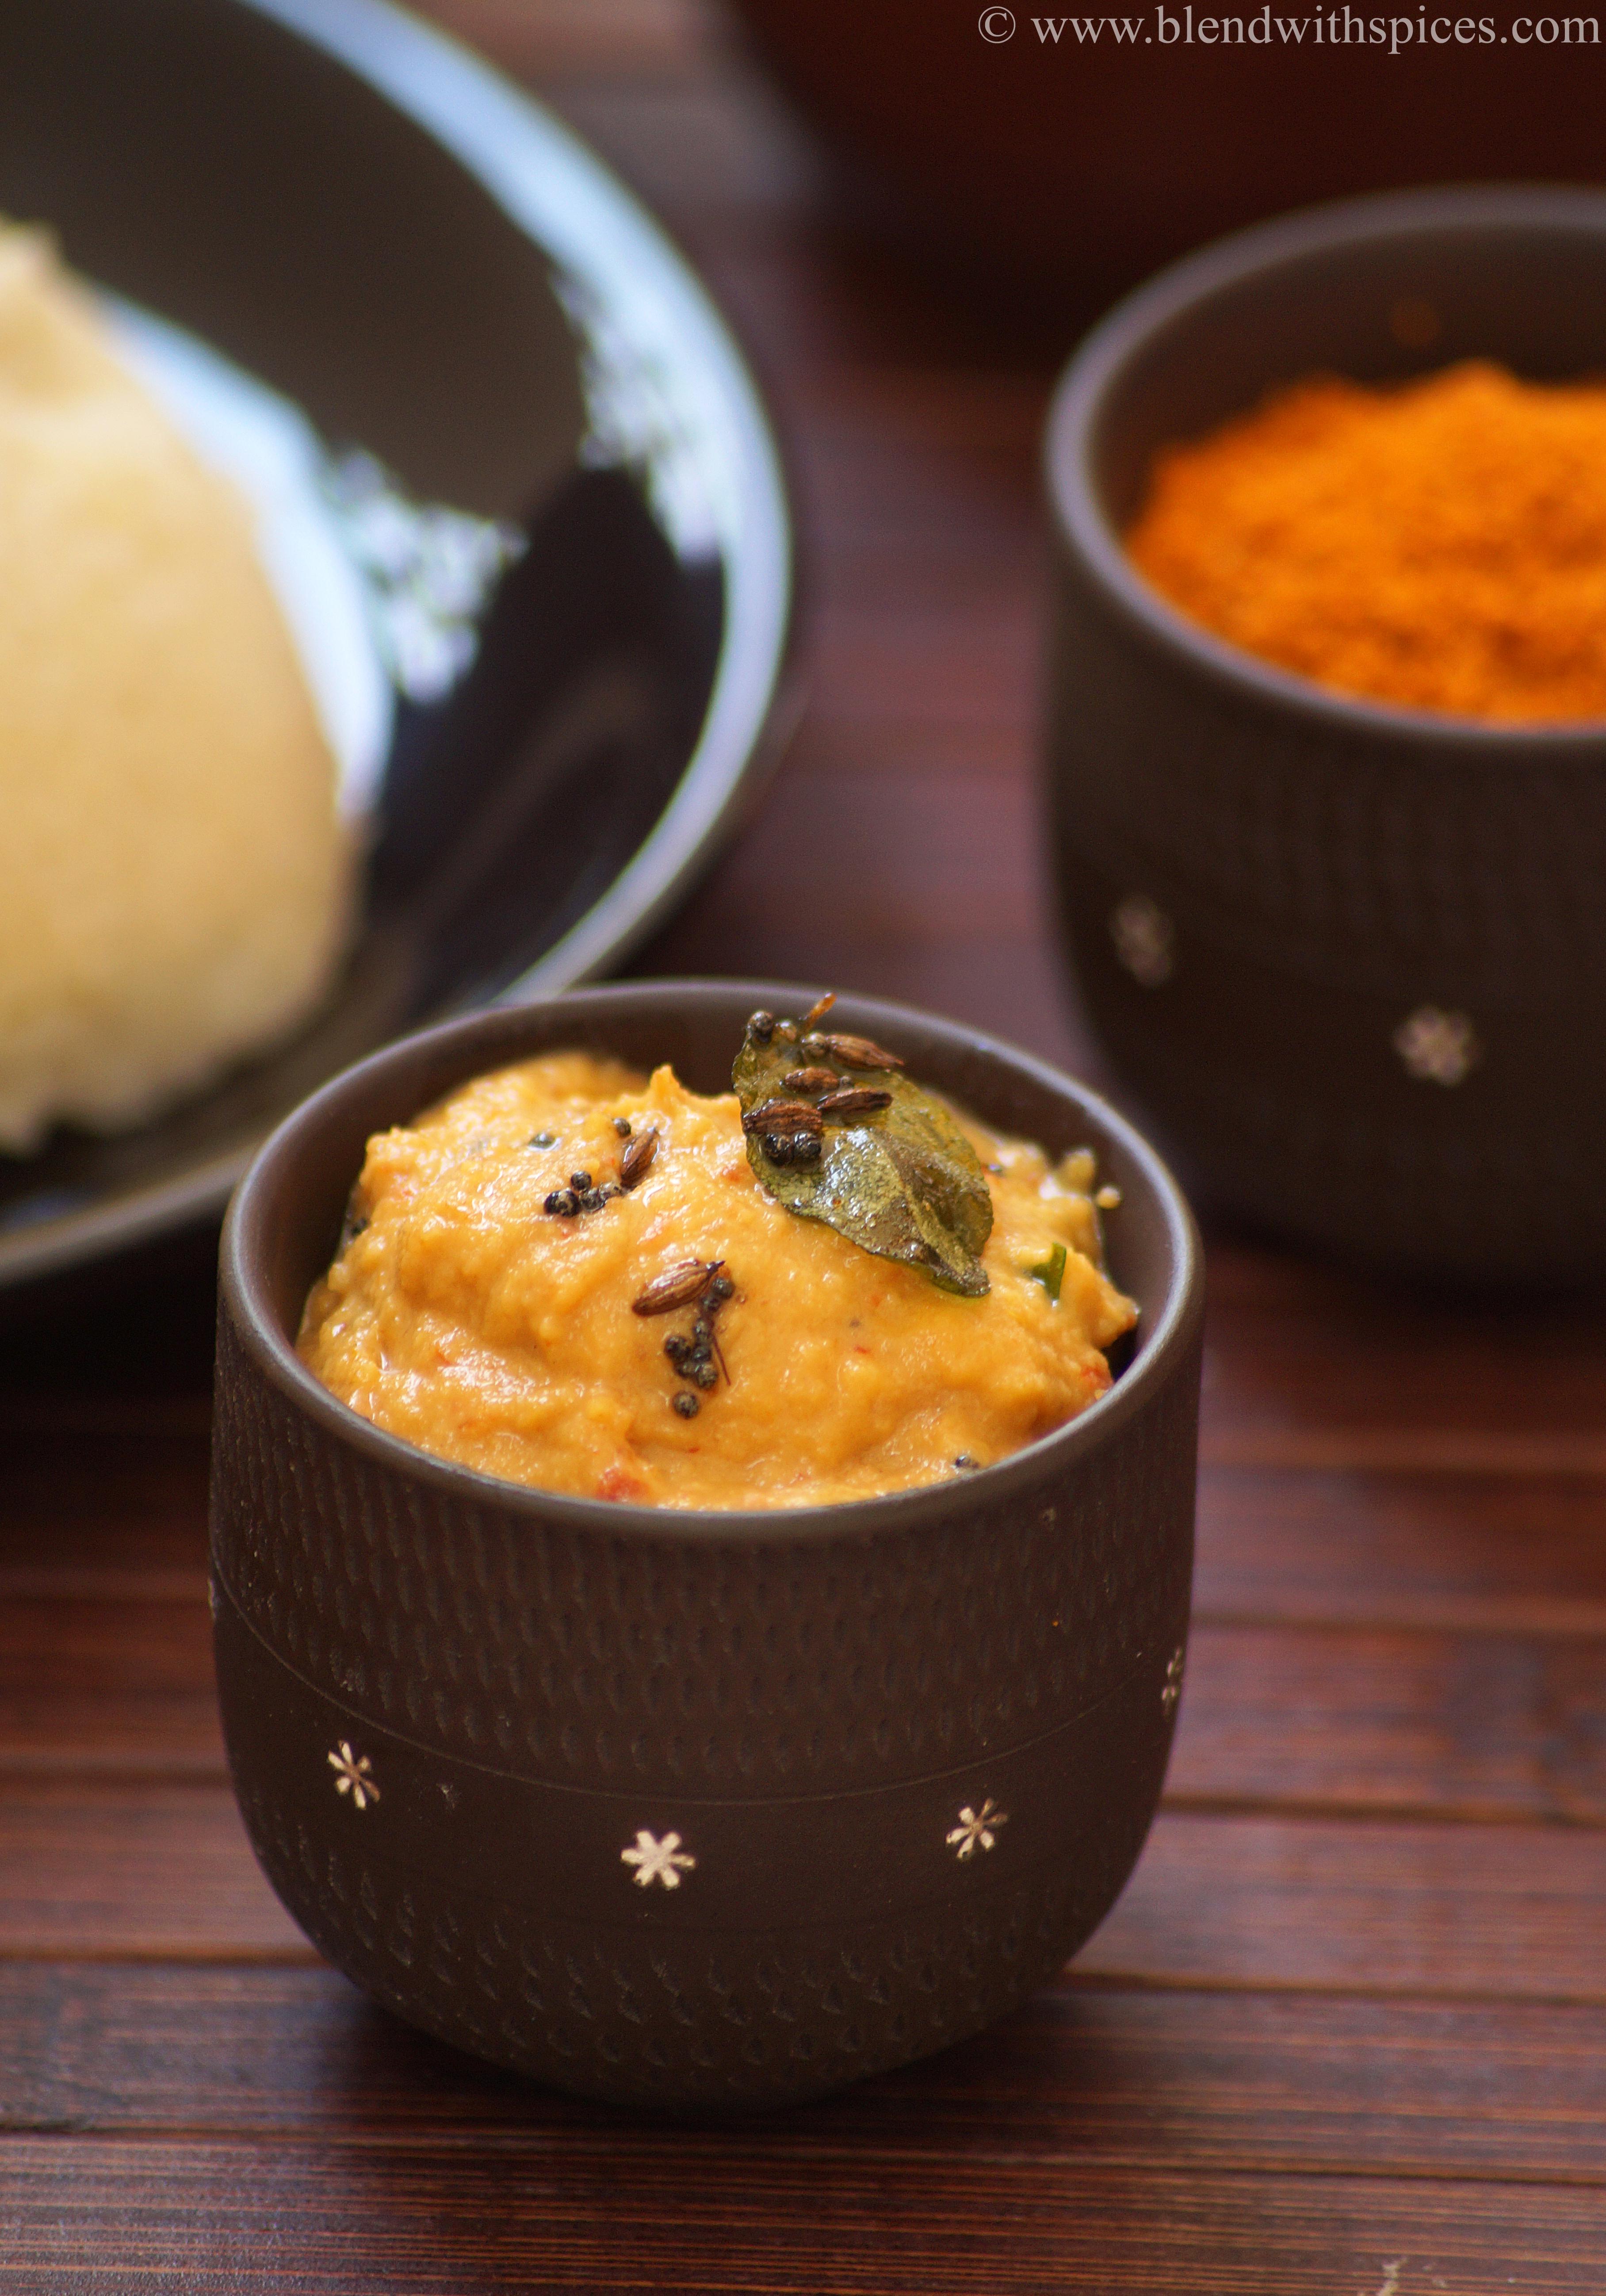 mullangi pachadi recipe, radish chutney recipe, south indian radish chutney